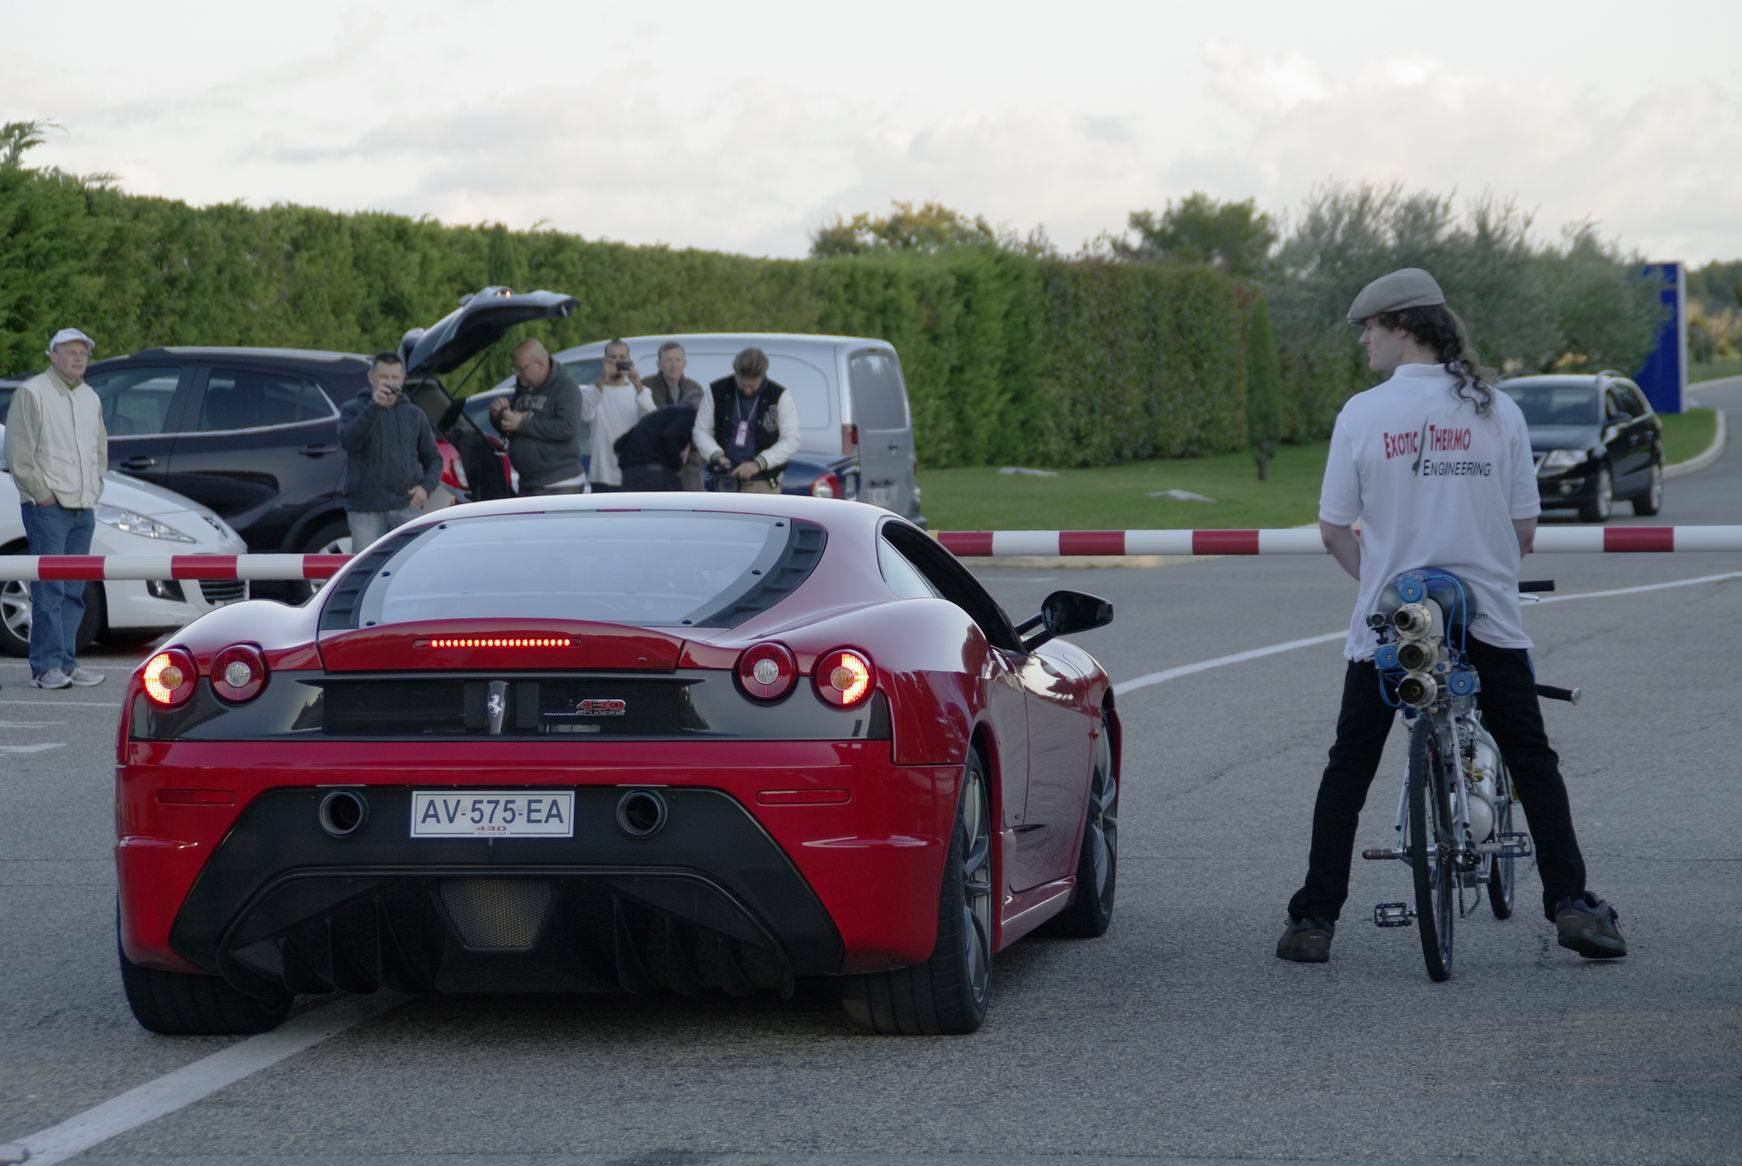 rocket-bicycle-does-333-km-h-murders-ferrari-430-scuderia-videophoto-gallery_2